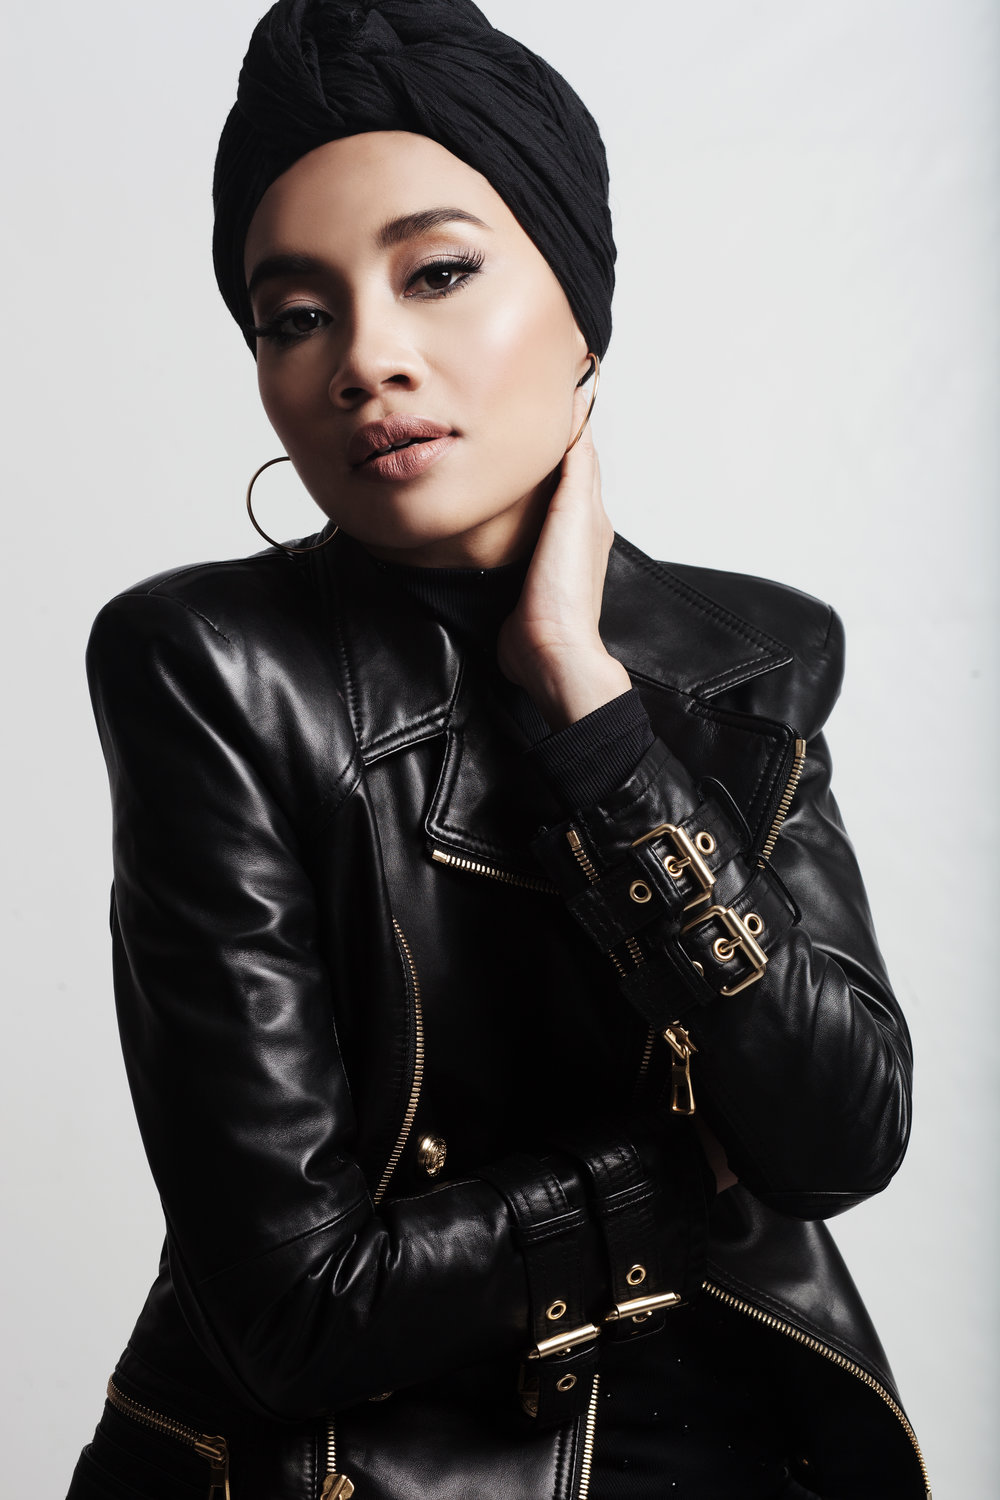 "YUNA - Yuna is used to transcending expectations - and she does so again with what Rolling Stone has hailed as one of the Best R&B albums of 2016. Chapters, released on Verve Music boasts her most confessional songwriting yet - combined with a surprising group of legendary creative collaborators, including Usher and DJ Premier the album is retro-futuristic urban groove that's all new, and all her. ""It's not just a collection of songs, but a body of work"" Yuna explains. ""It's unlike anything I've ever done before.""An early buzz on social media attracted the attention of US management company Indie-Pop, who quickly helped turn her from a law student playing in coffee shops into an award winning household-name. ""Live Your Life"", an uplifting yet haunting Pharrell-produced hit crossed her into a mainstream market and she hasn't looked back."